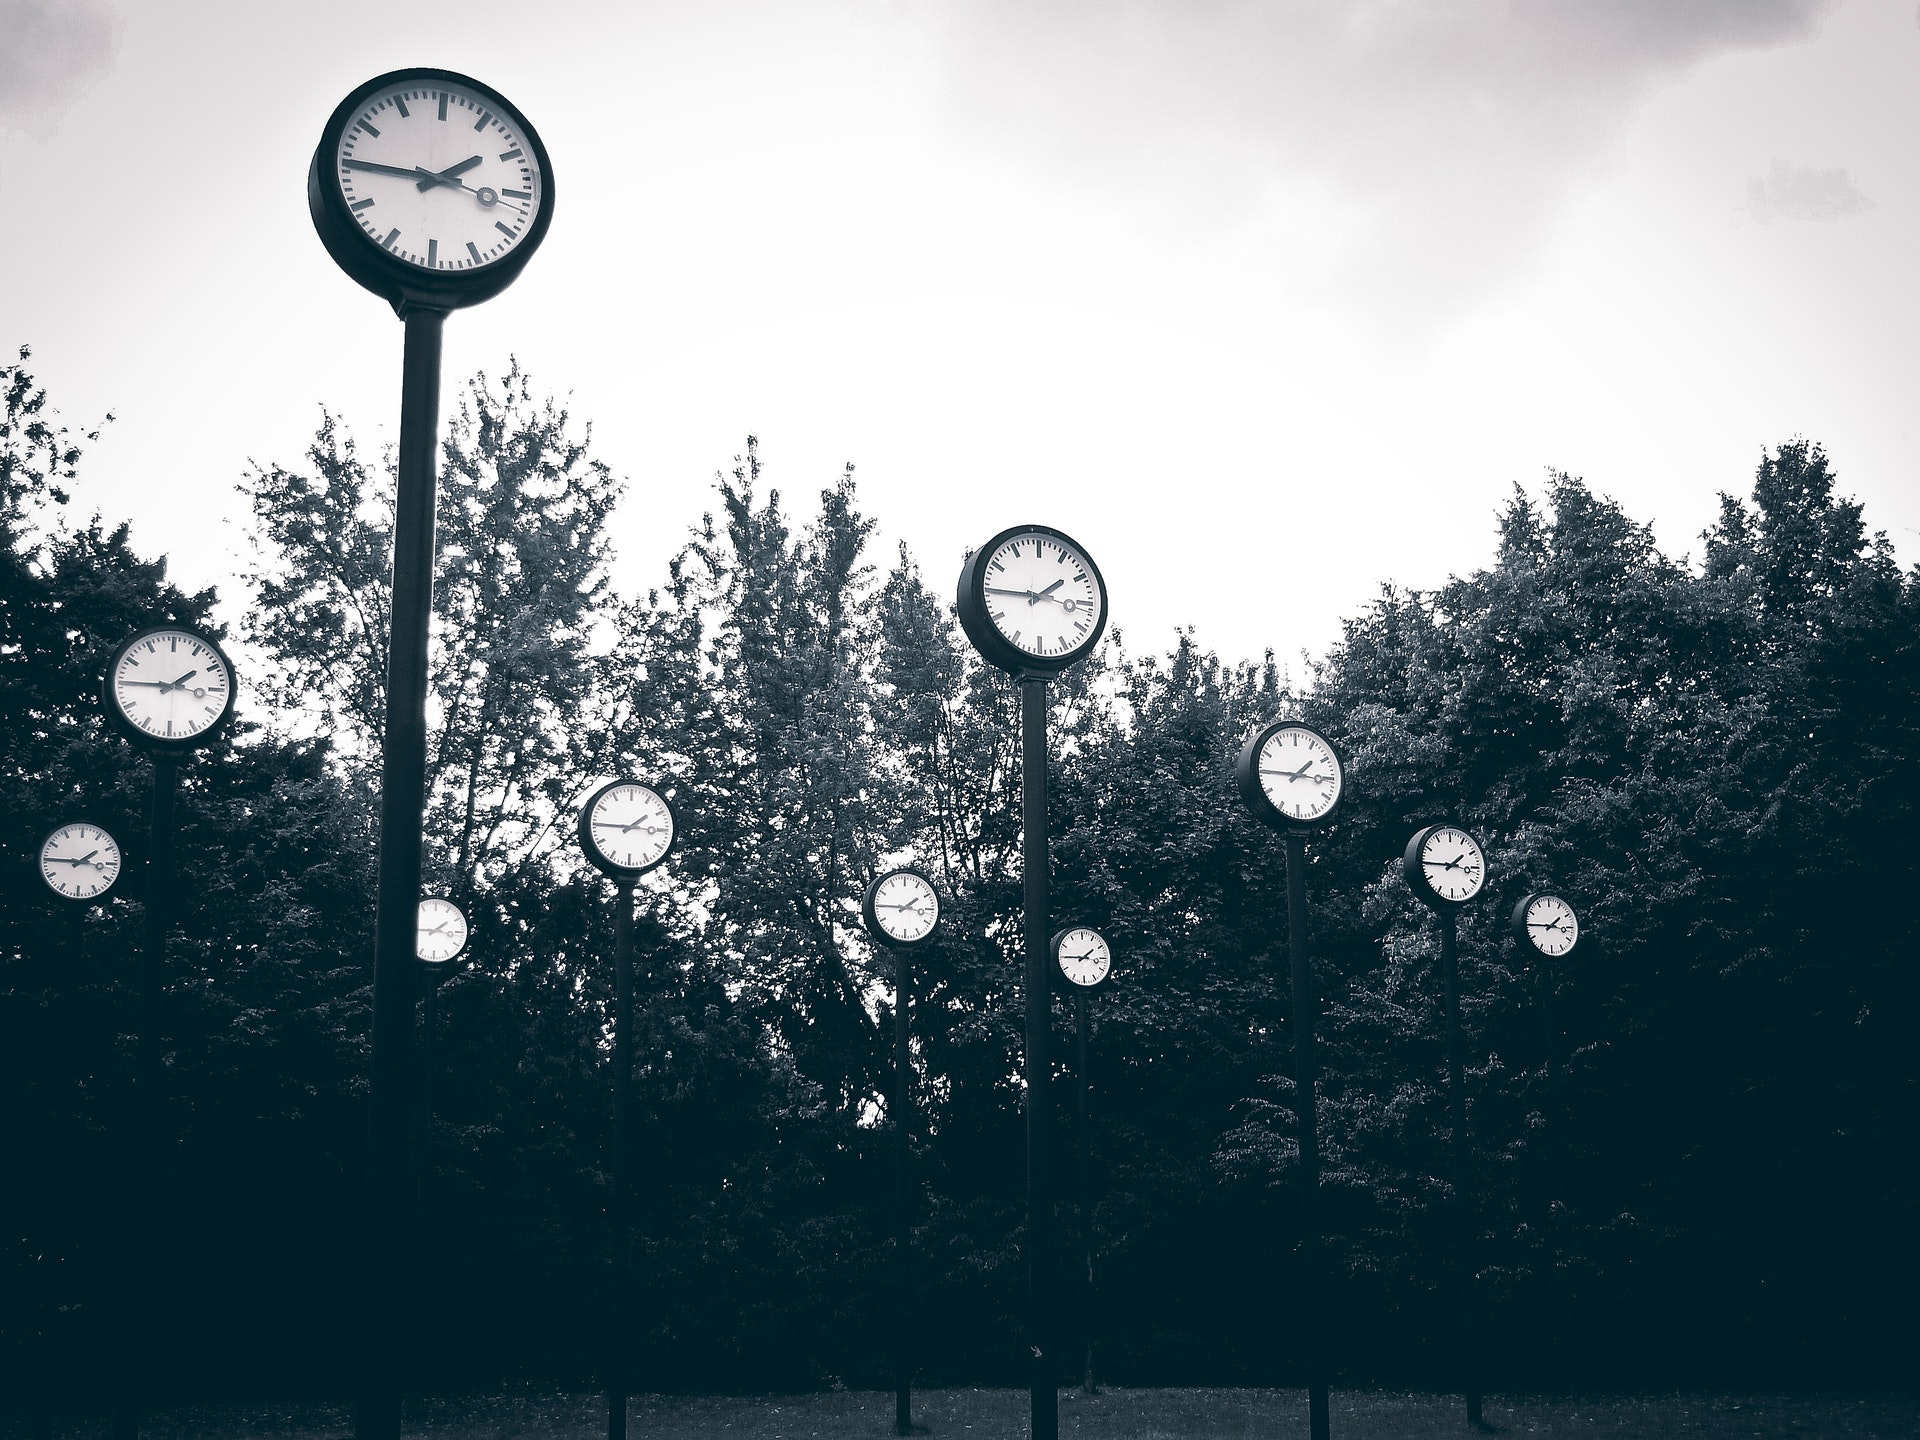 Image of clocks accompanying article about the importance of mindfulness and pausing